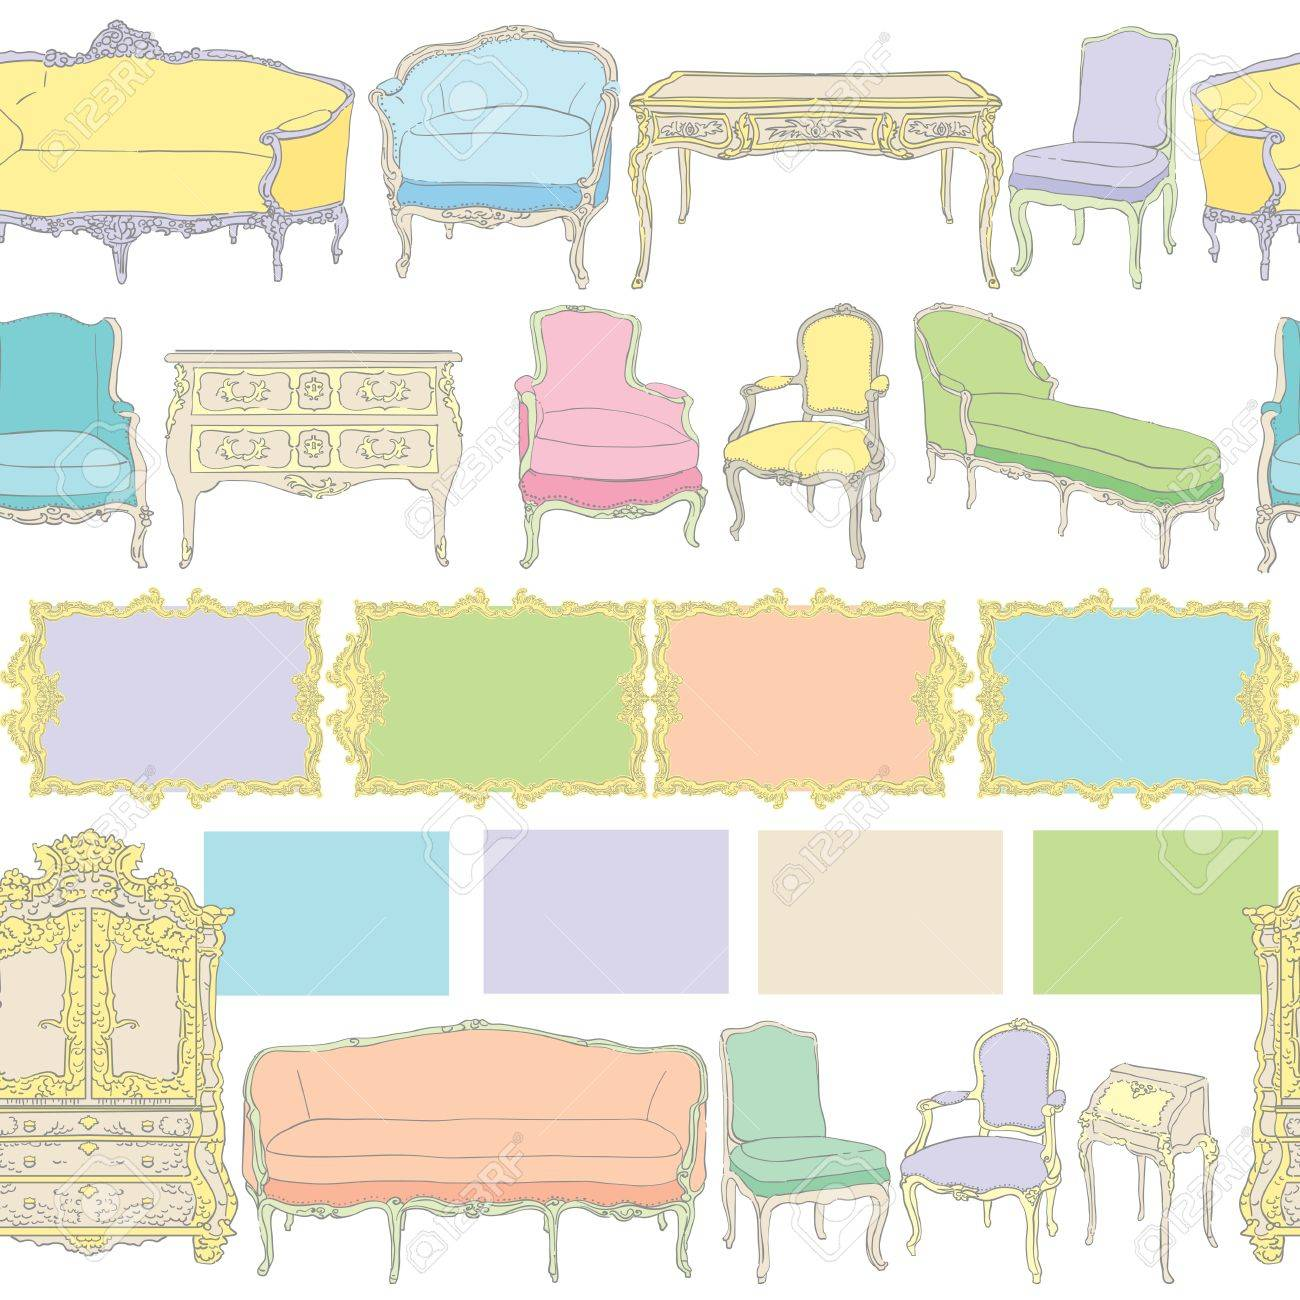 Rococo furniture sketch - Vector Rococo Furniture Pattern Colored Doodles On White